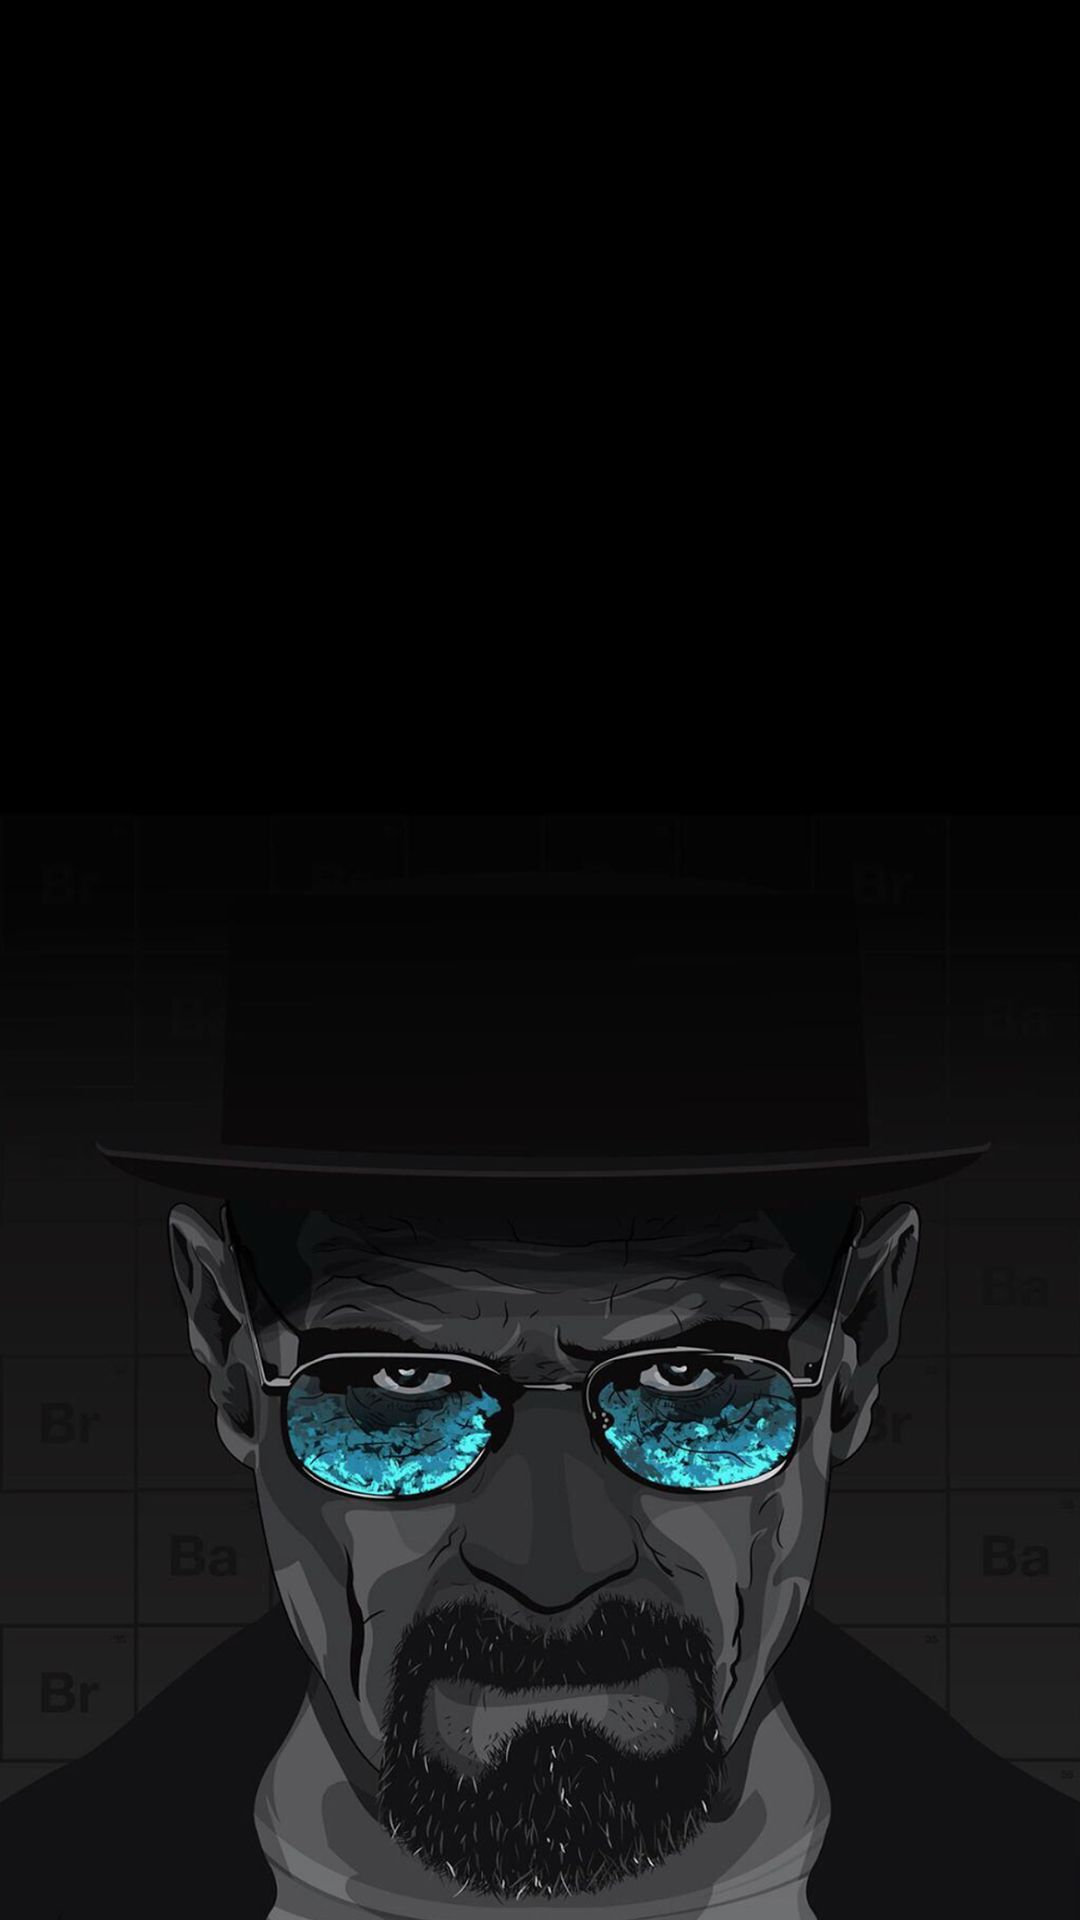 Breaking Bad Iphone Wallpapers Top Free Breaking Bad Iphone Backgrounds Wallpaperaccess Breaking Bad Oneplus Wallpapers Star Wars Images